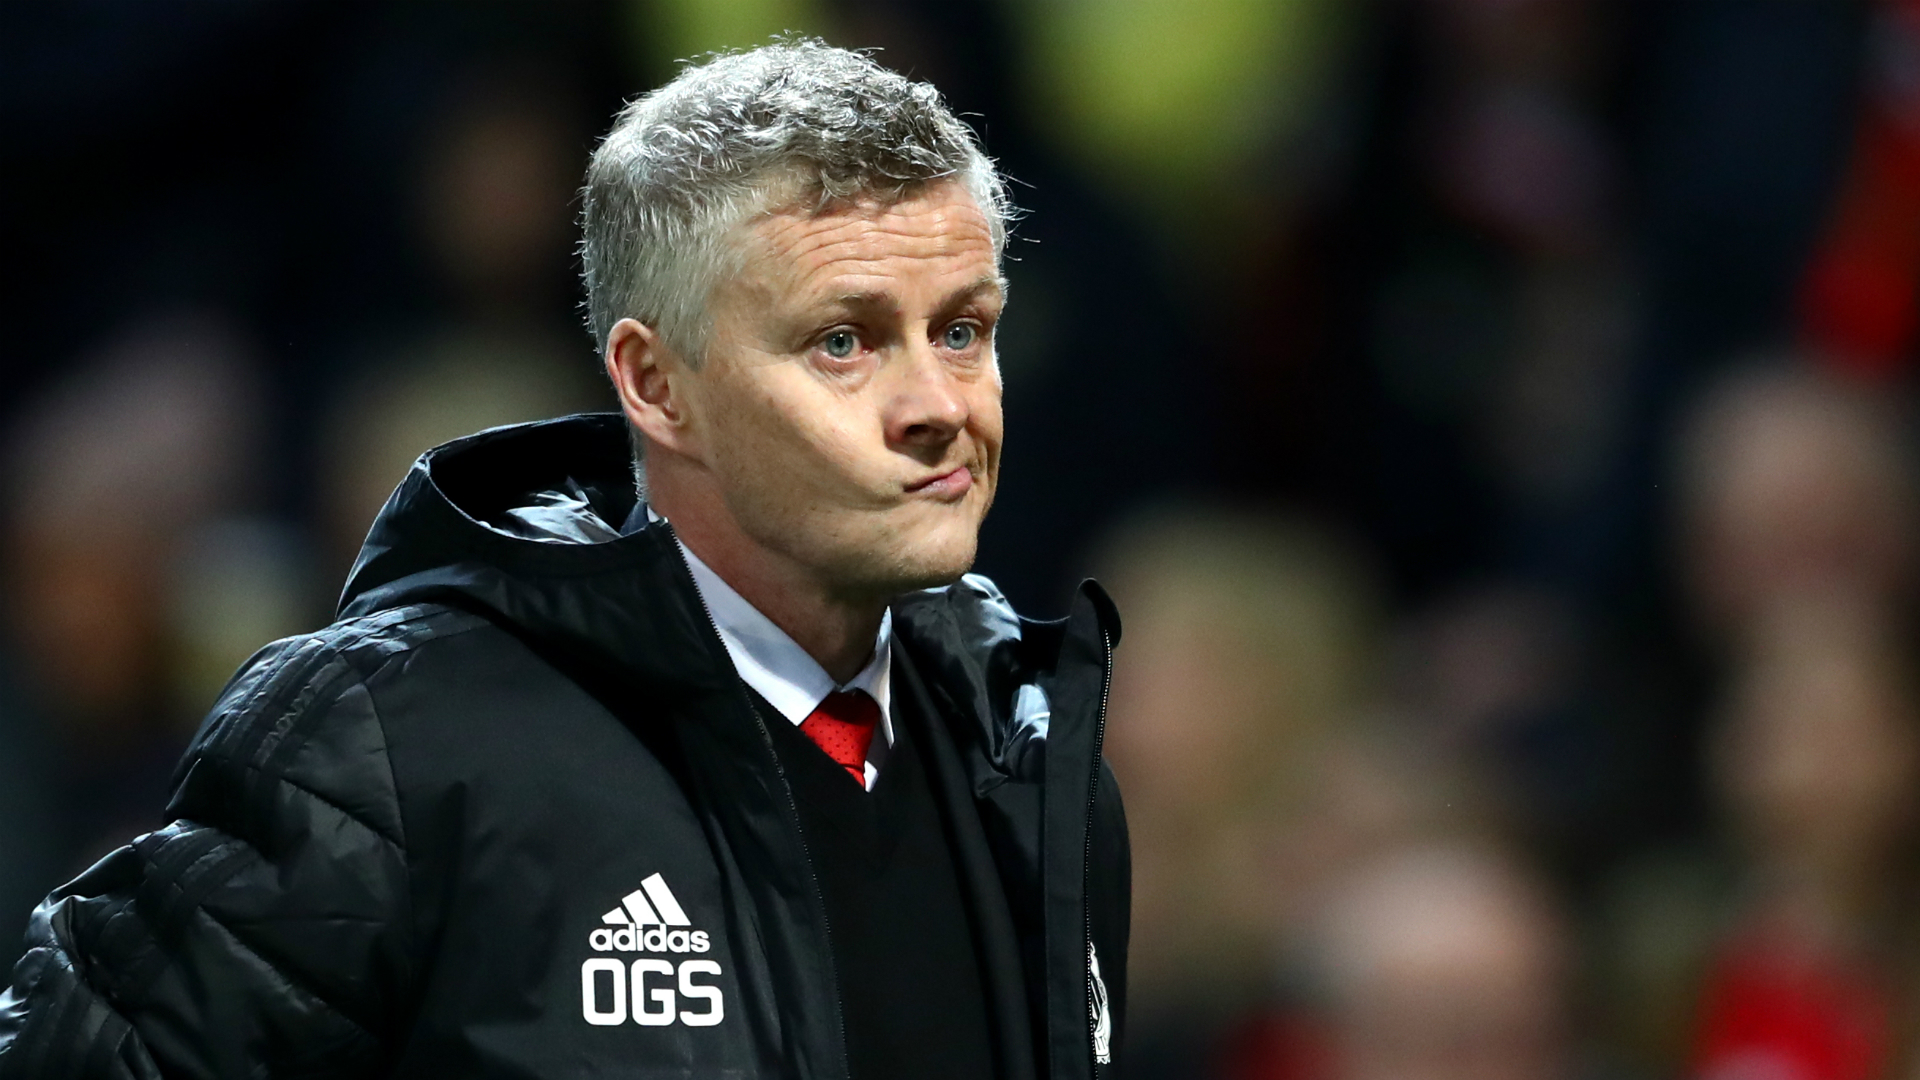 Mountains are there to be climbed - Solskjaer upbeat after United loss